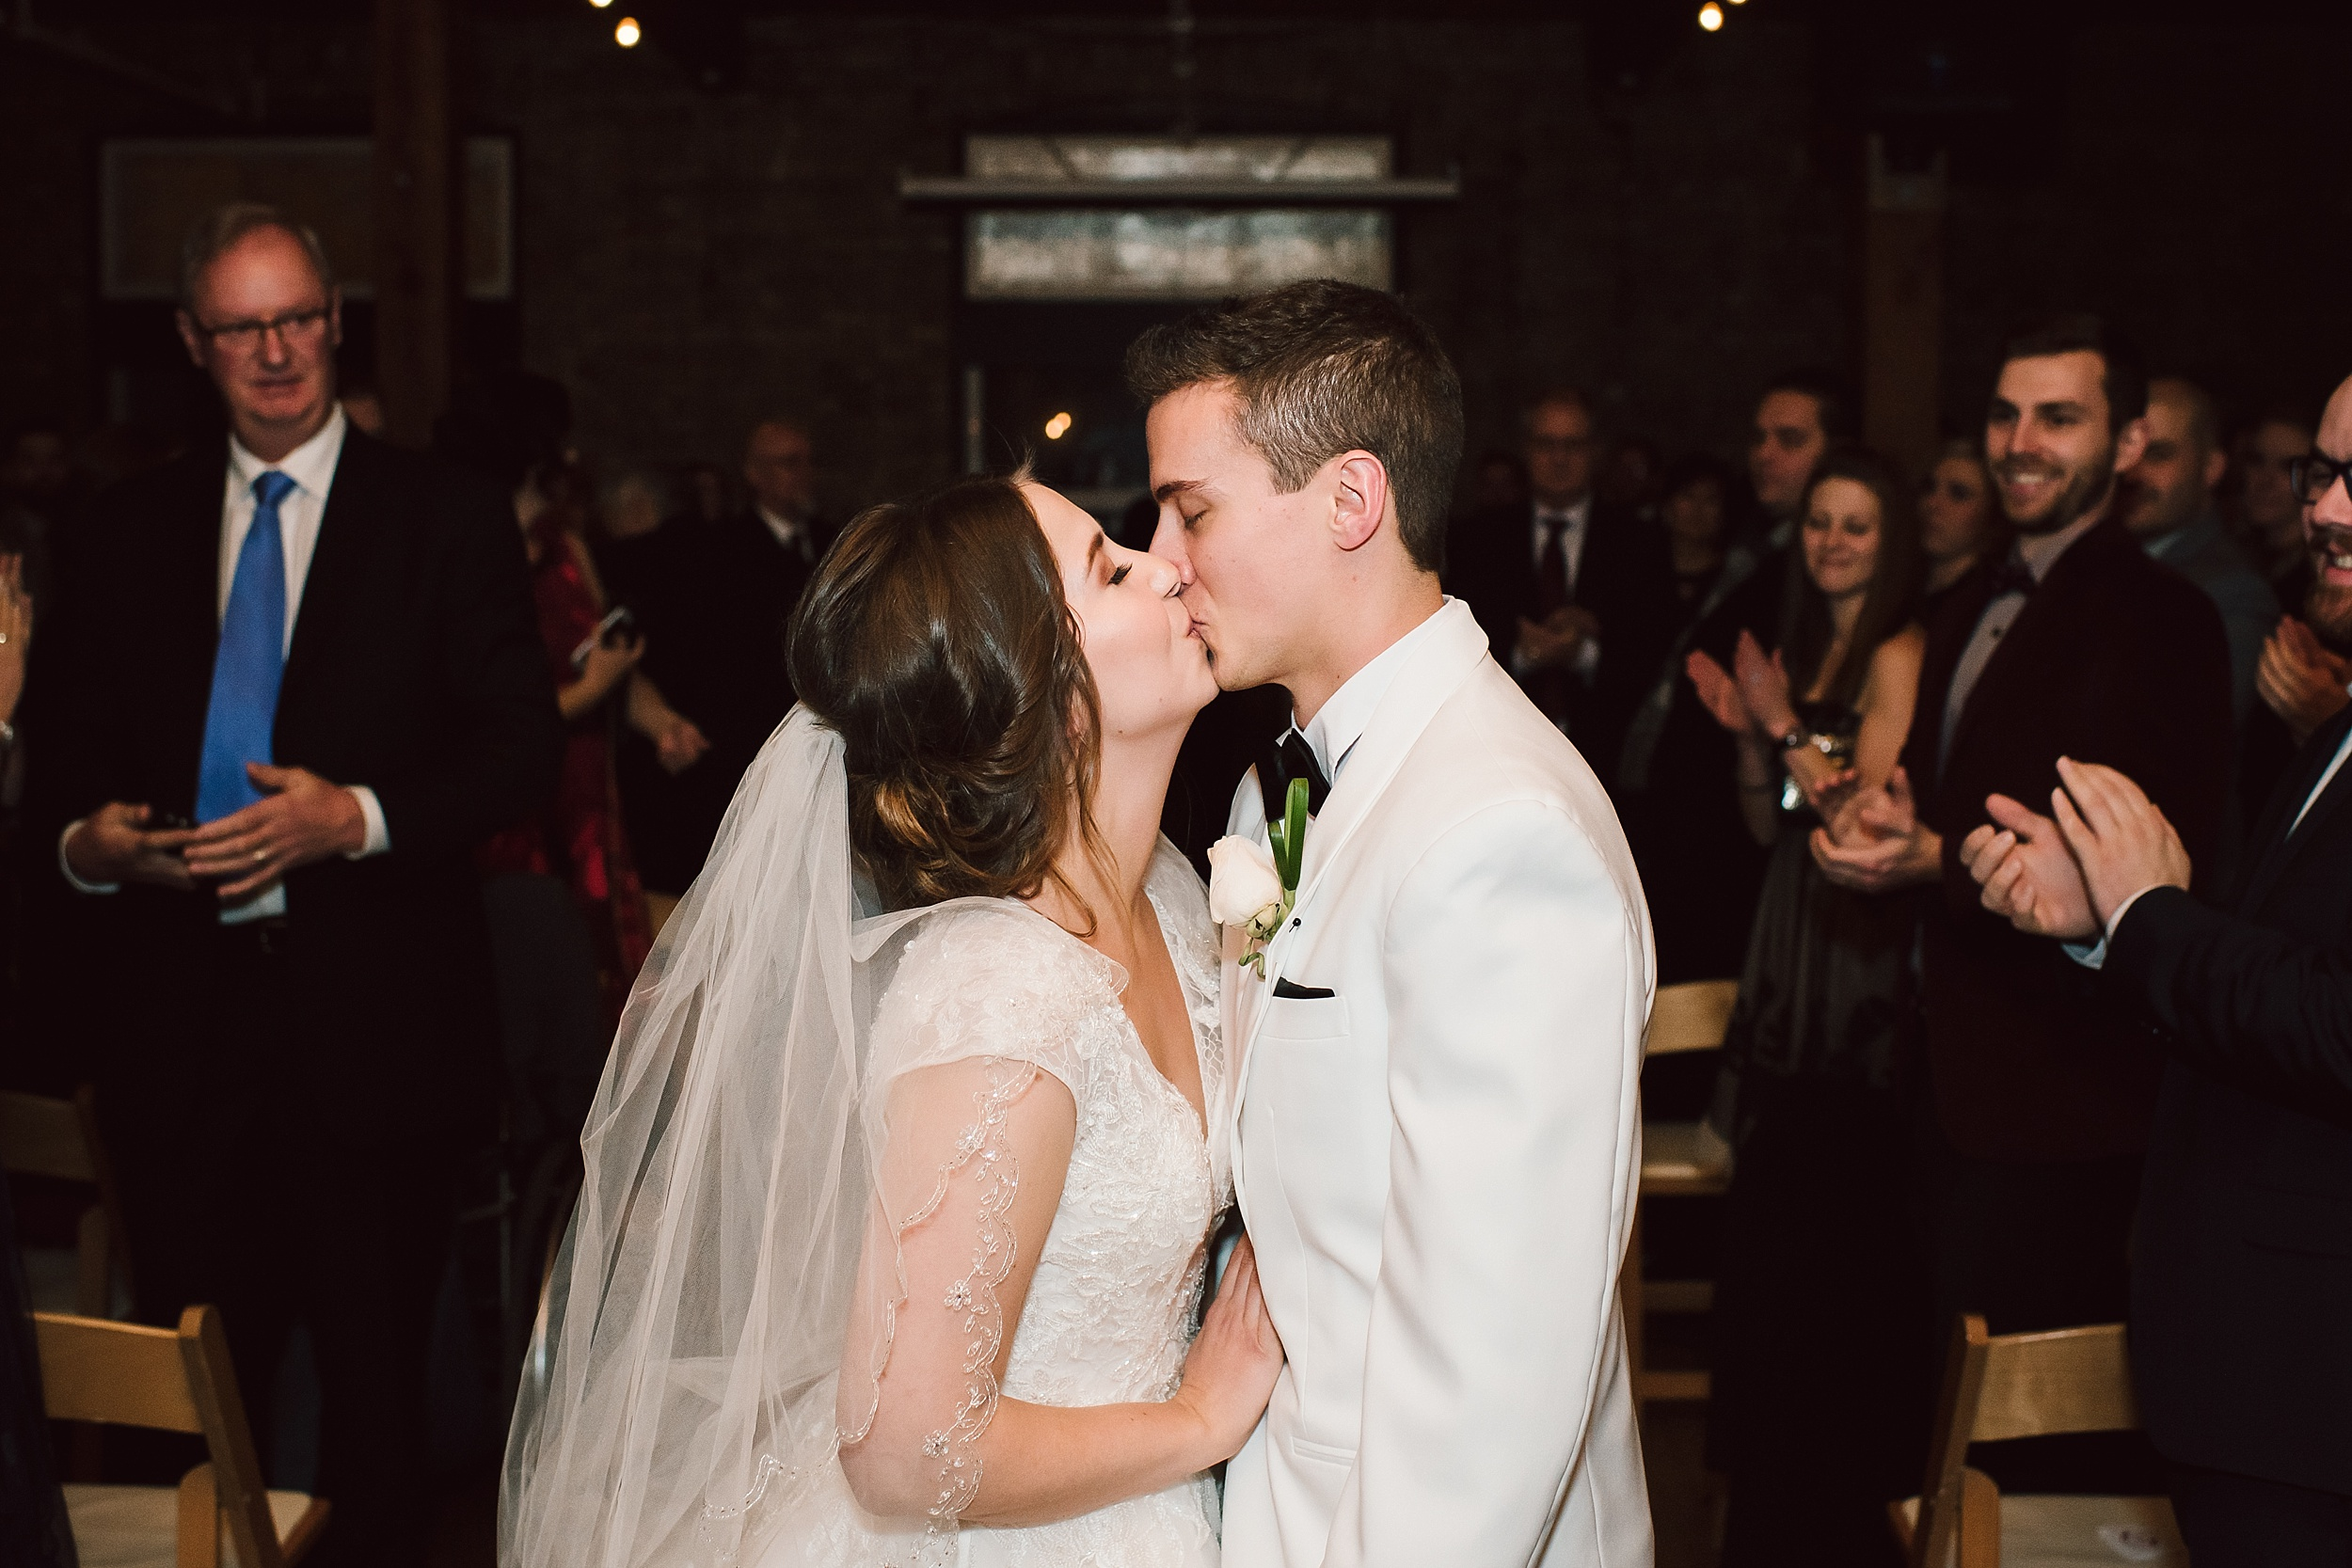 Jam_Factory_Wedding_Toronto_Winter_Wedding_Photographer_0061.jpg